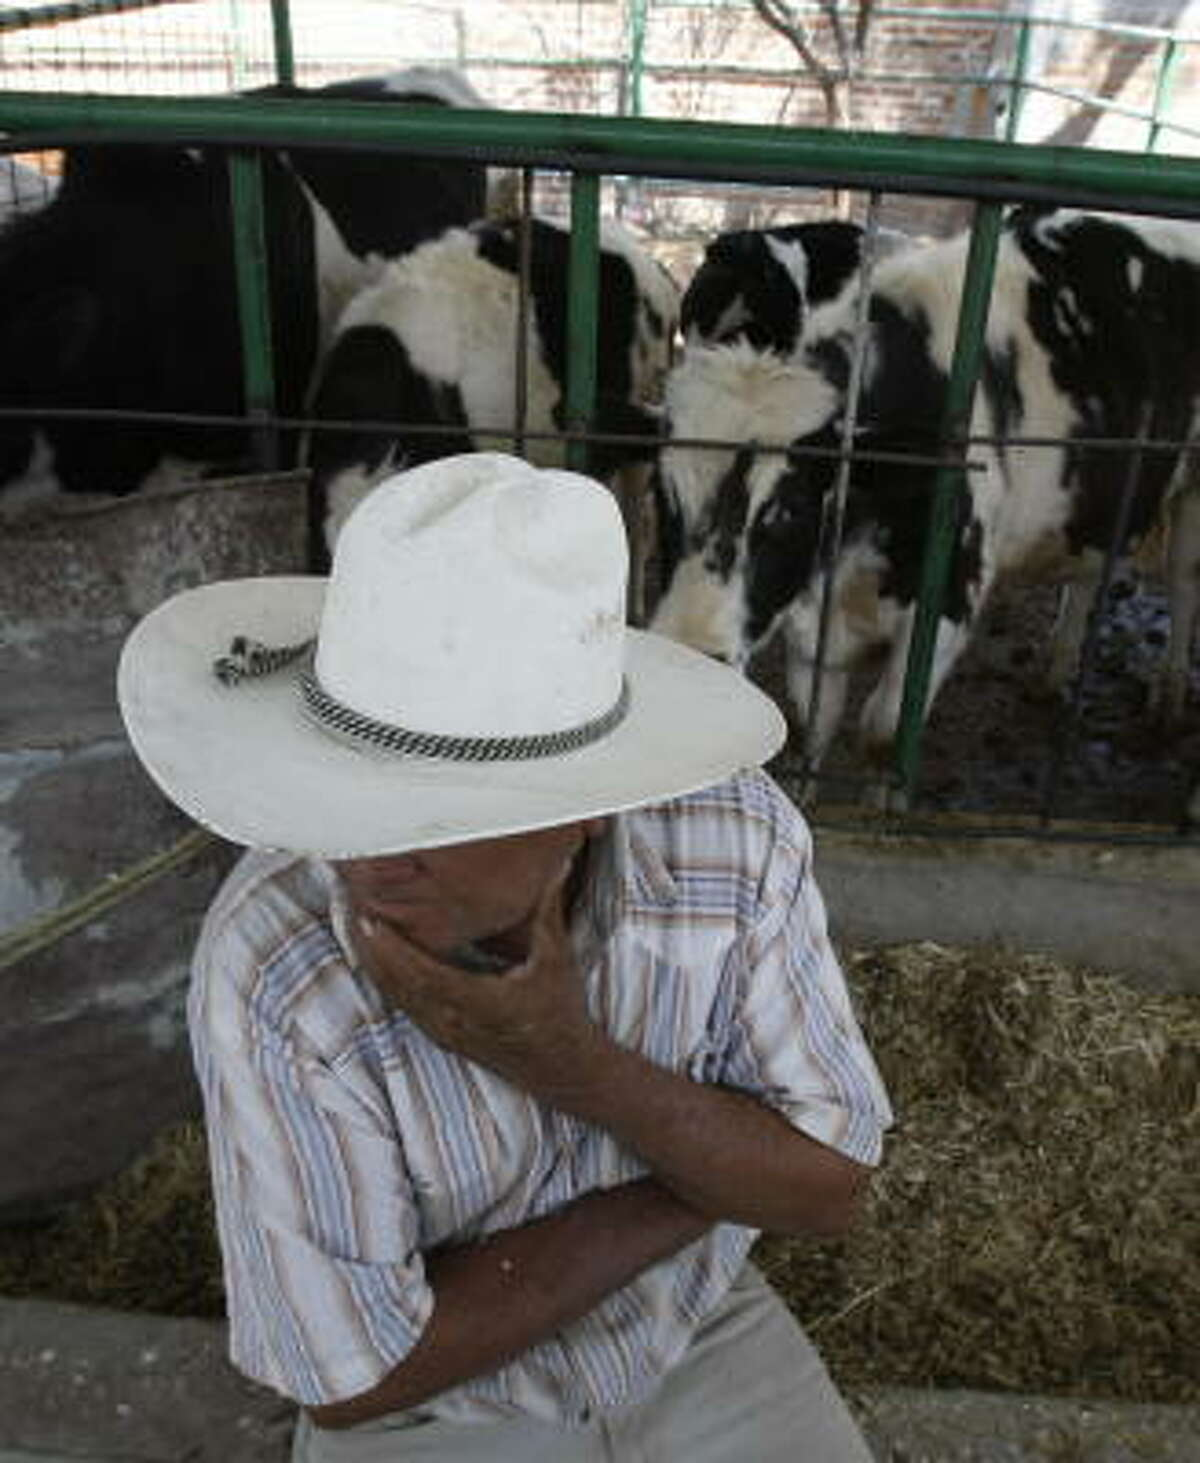 Natividad Lerma, 67, works on a ranch outside Leon in Guanajuato, Mexico, where dairy farmers are offering milk to wholesalers collectively so they can demand a higher price.